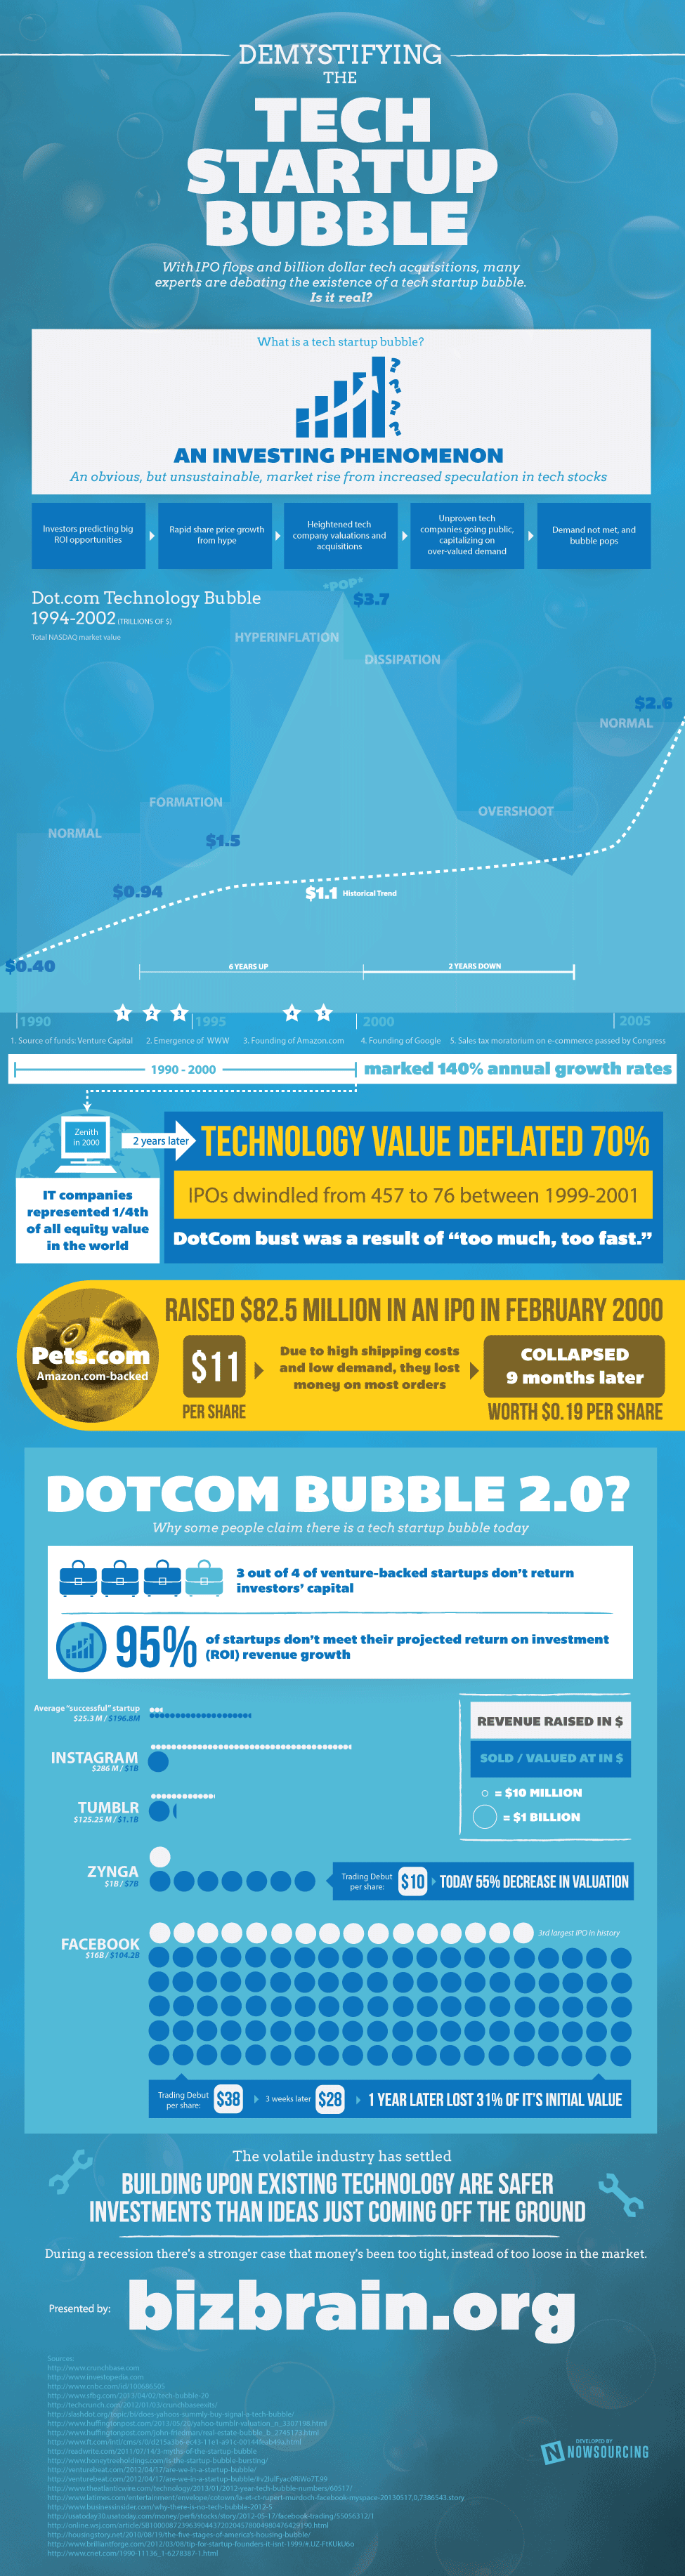 Demystifying the Tech Startup Bubble